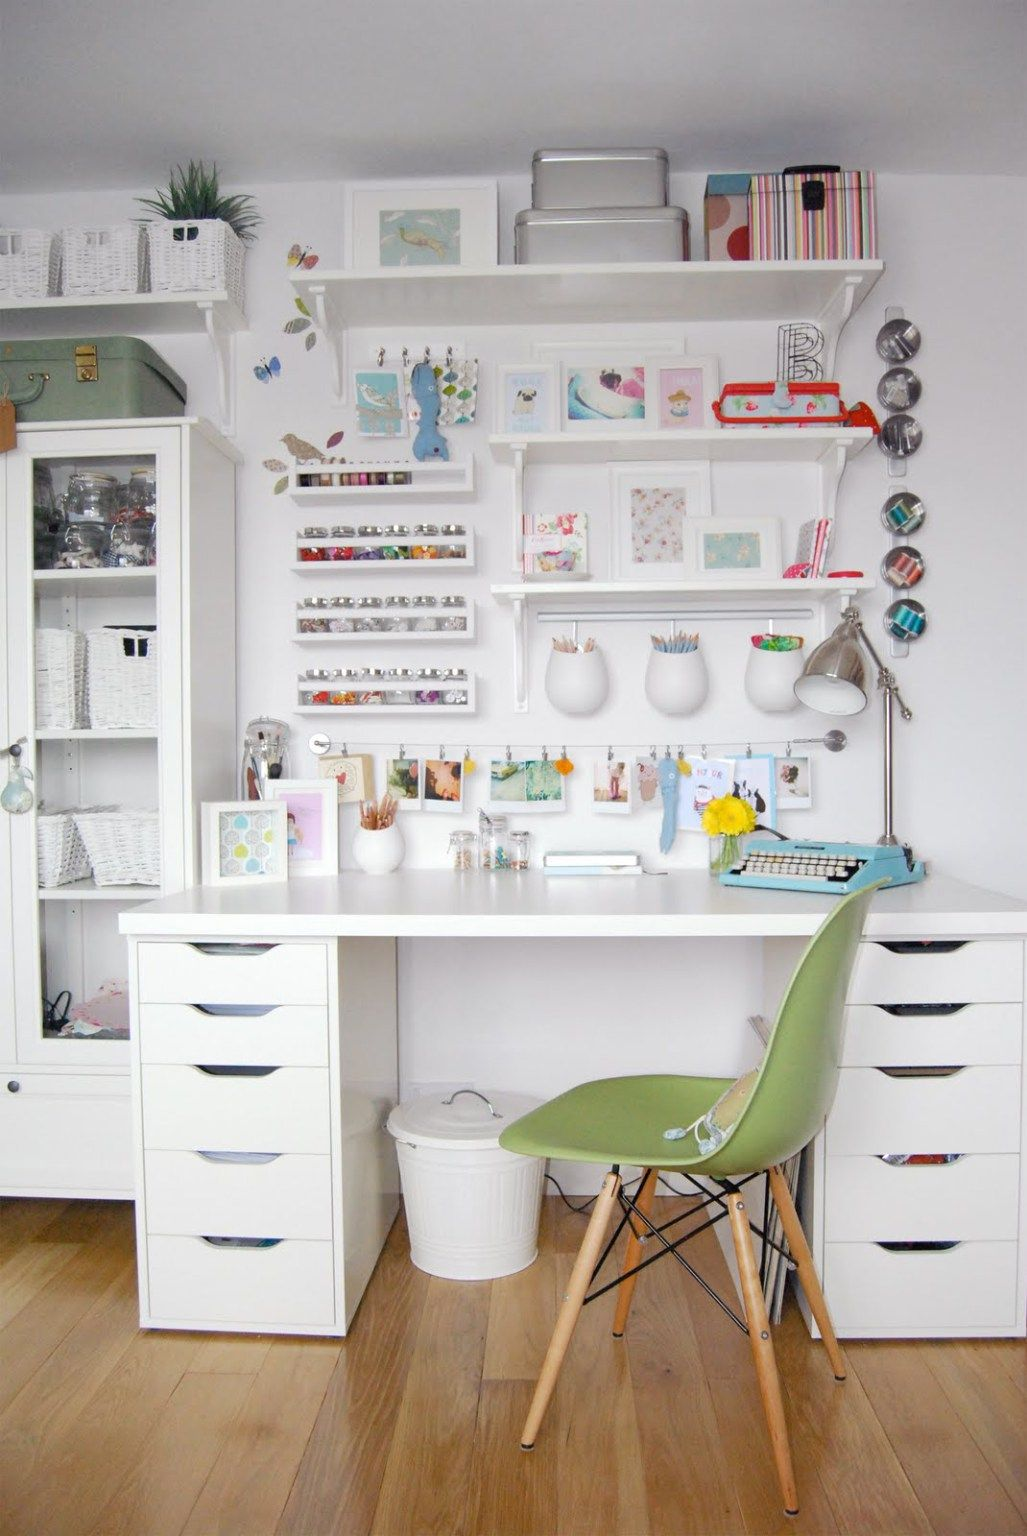 The Absolute Best Ikea Craft Room Ideas The Original Ikea Craft Room Ikea Crafts Craft Room Design